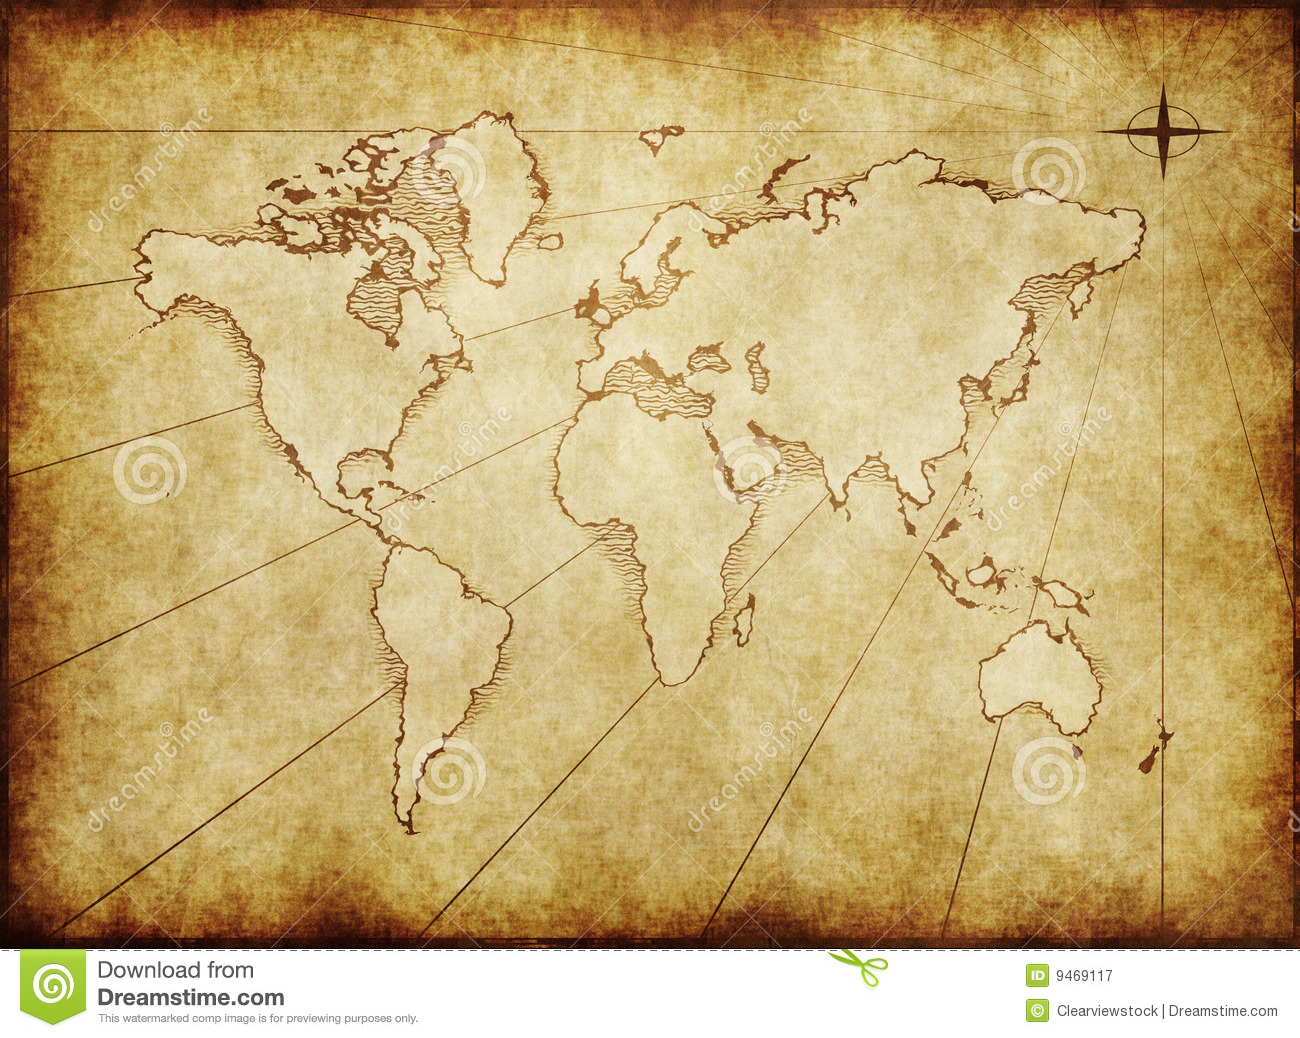 Old grungy world map on paper stock image image of vintage old grungy world map on paper gumiabroncs Gallery